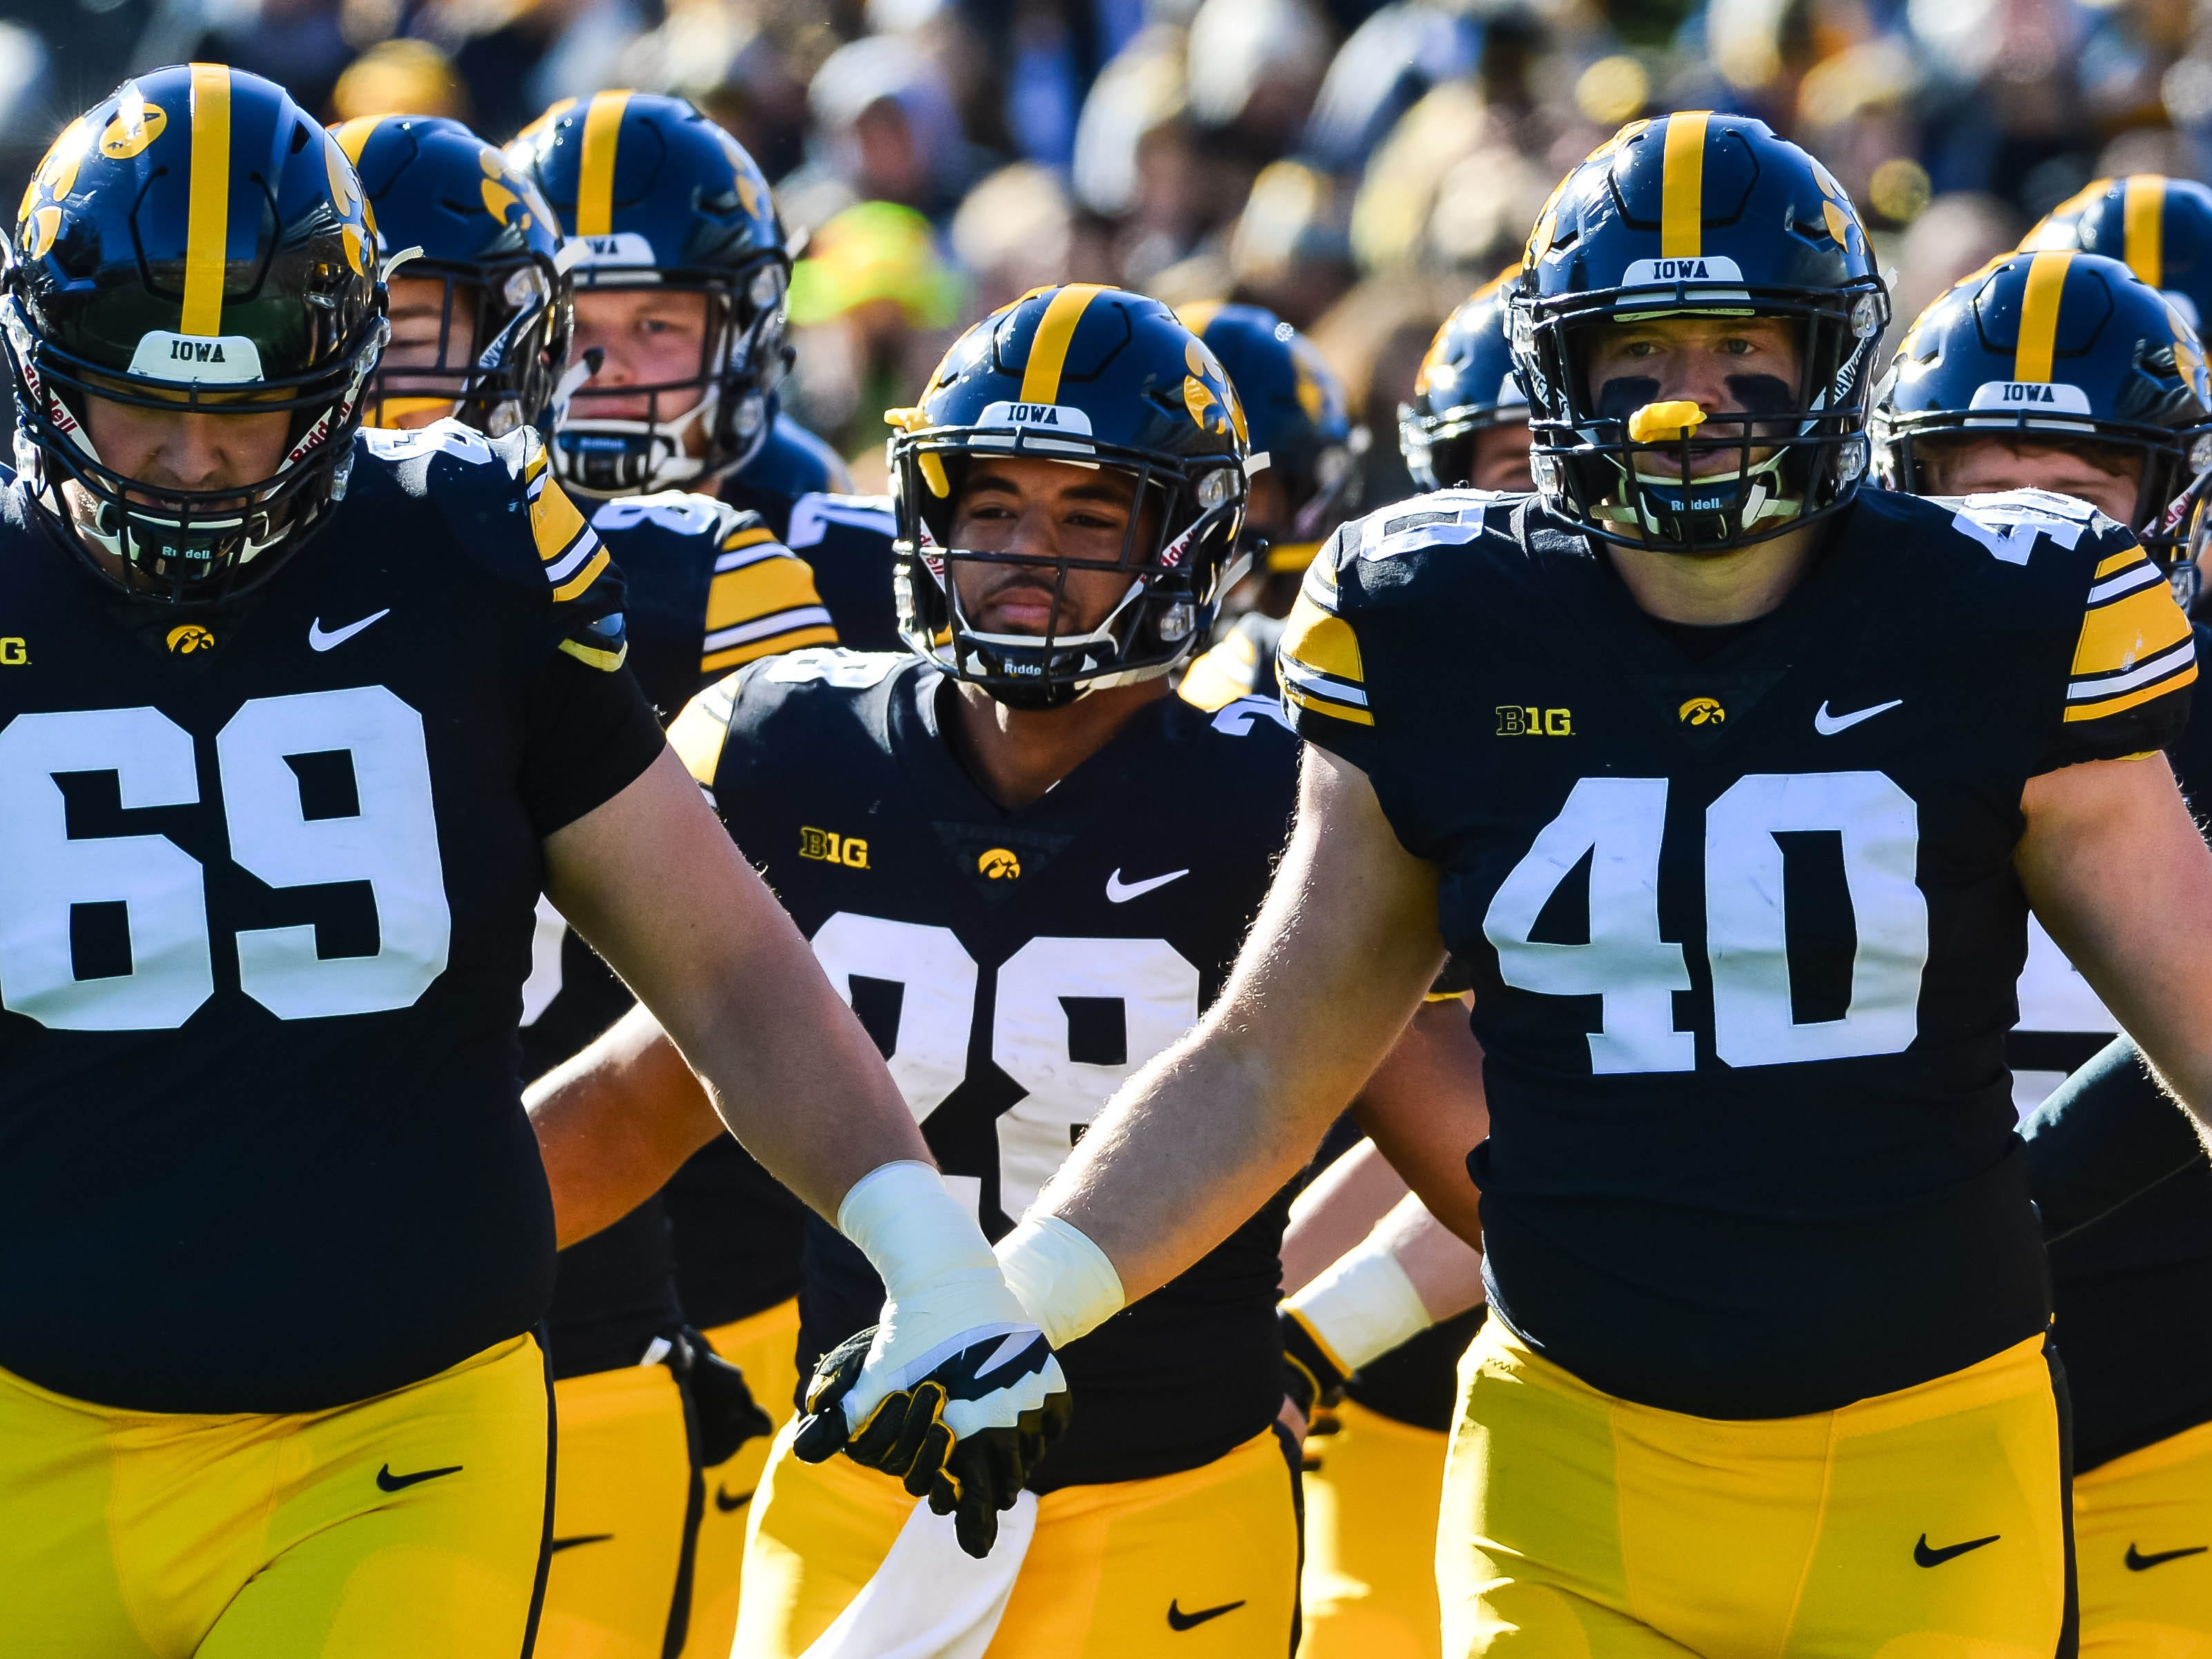 Parker Hesse (40) and the Hawkeyes get ready to take the field against Maryland before their 23-0 home win. This week, Iowa will play in front of 106,000-plus fans at Beaver Stadium in State College, Pennsylvania.